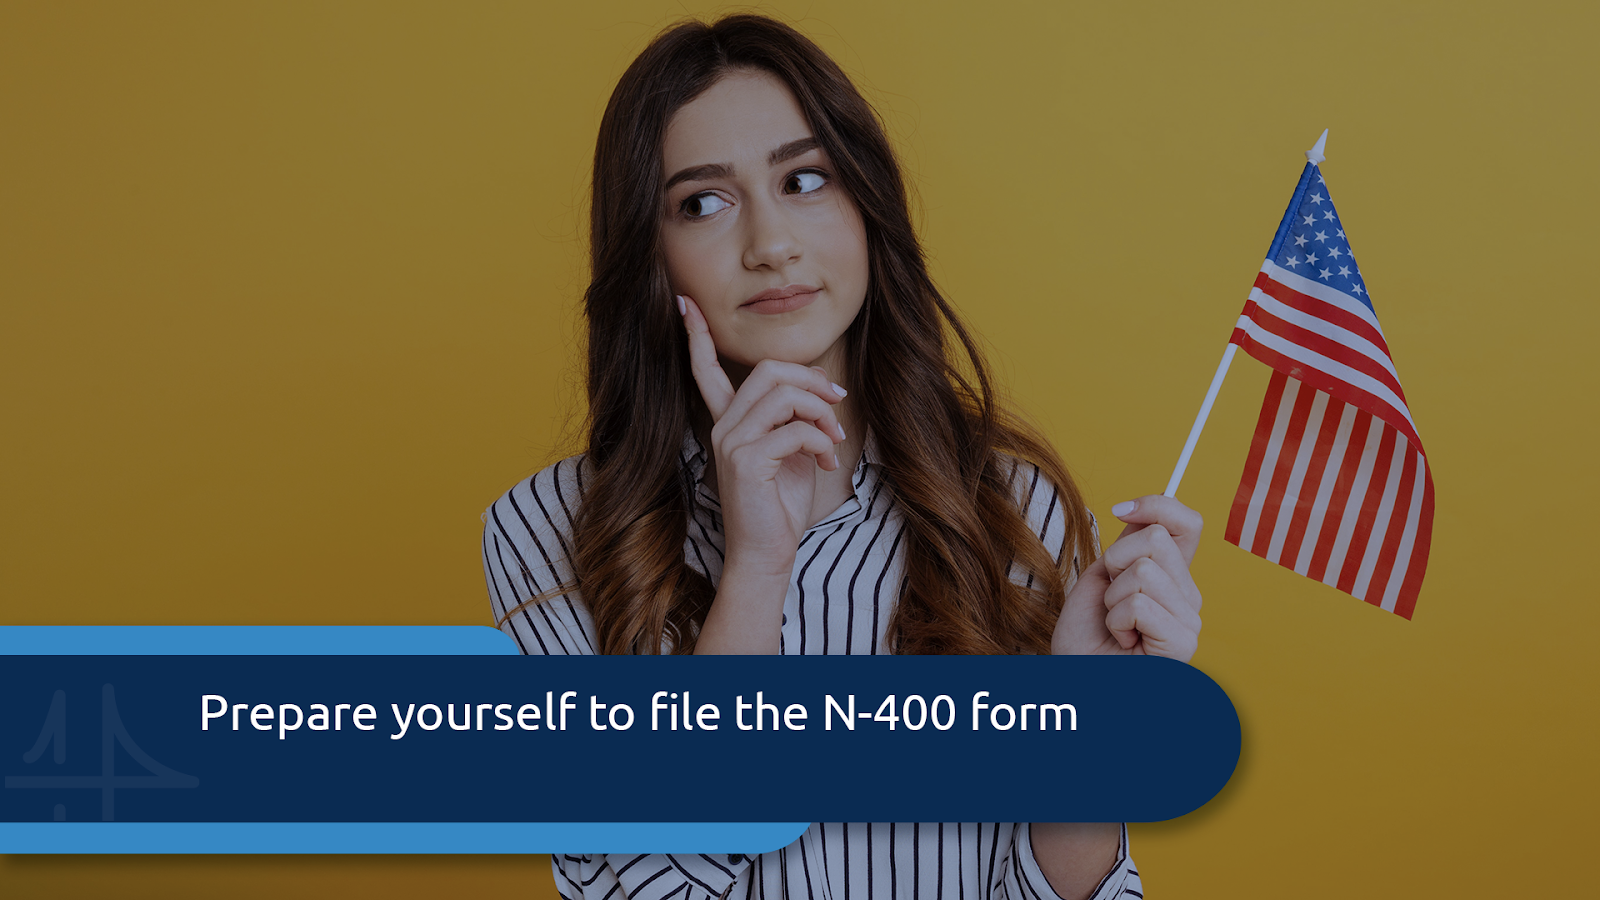 All you need to know about form N-400